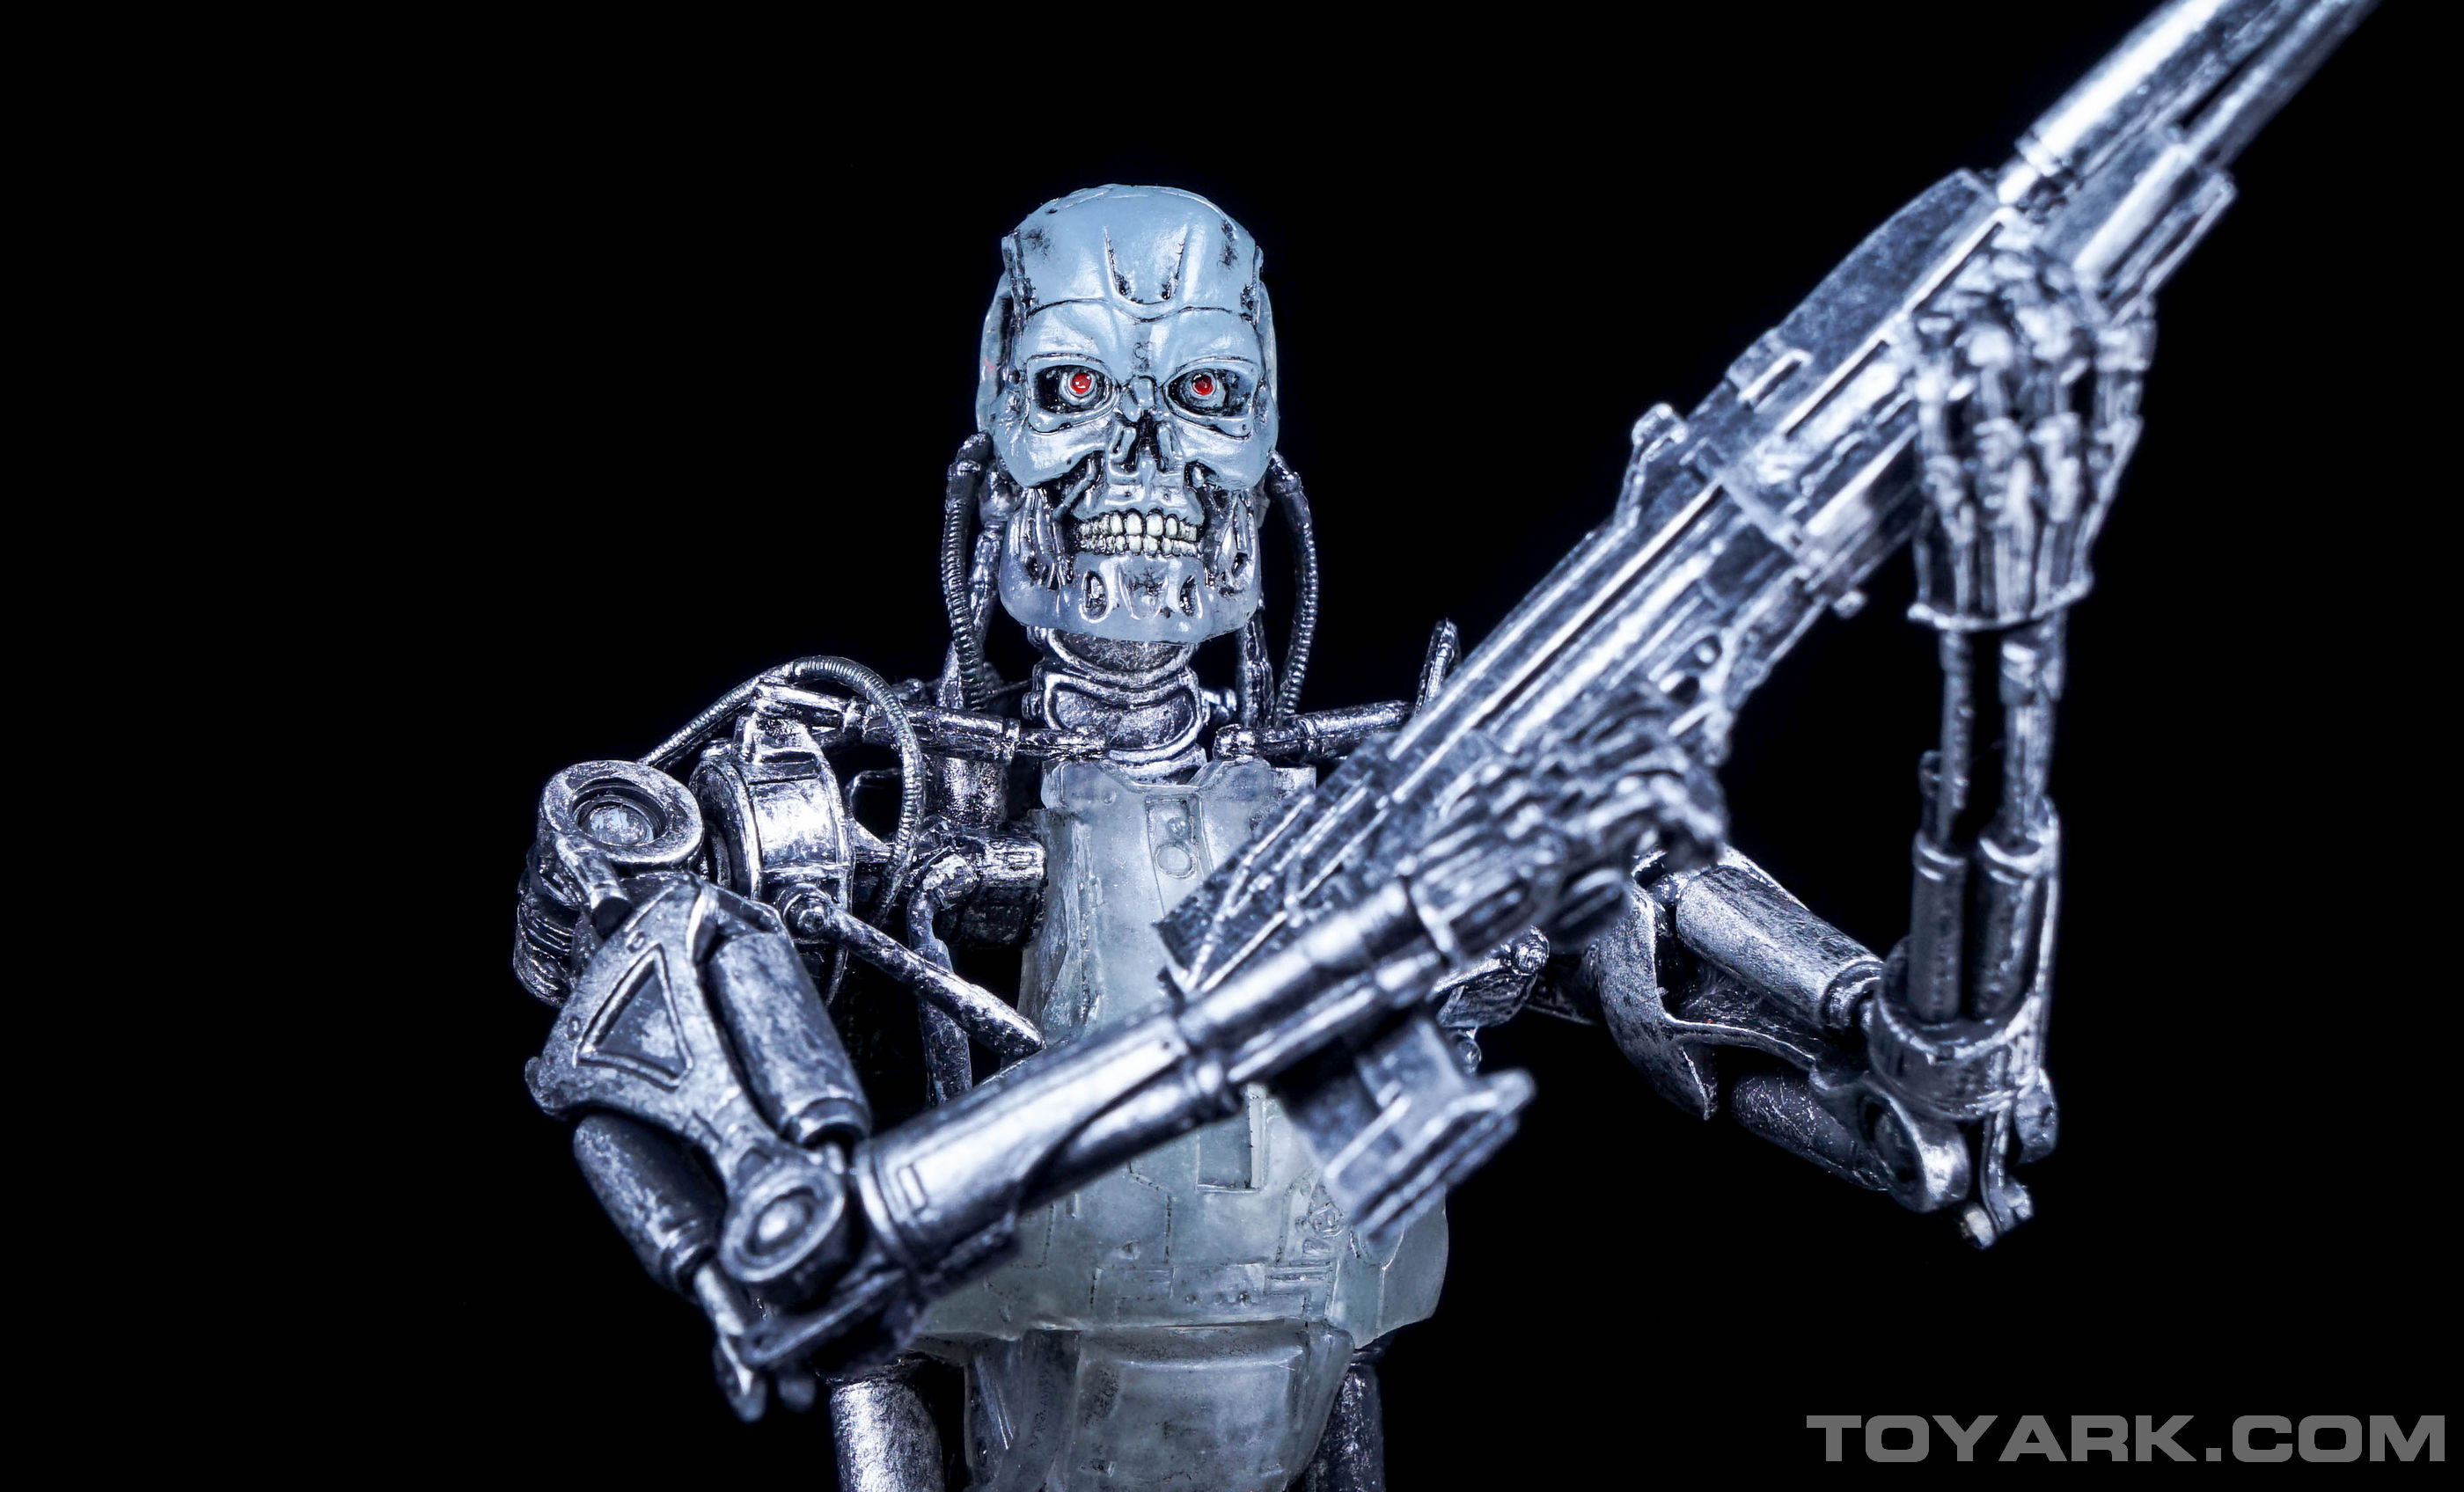 http://news.toyark.com/wp-content/uploads/sites/4/2015/08/Terminator-2-T-800-Endoglow-027.jpg